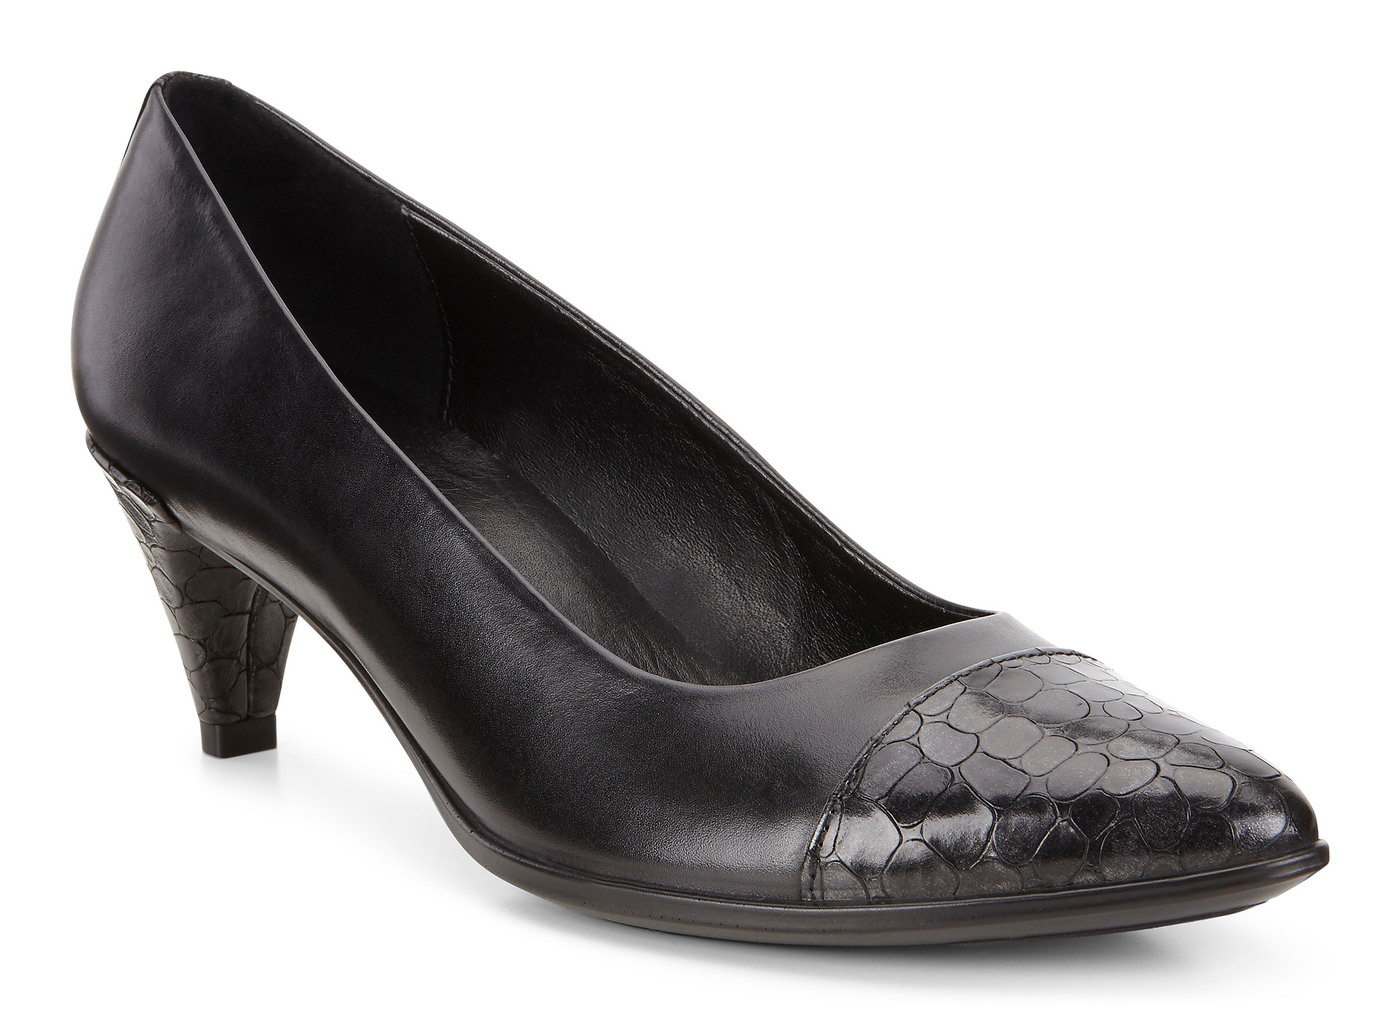 ECCO SHAPE POINTY SLEEK Modern Pump 45mm